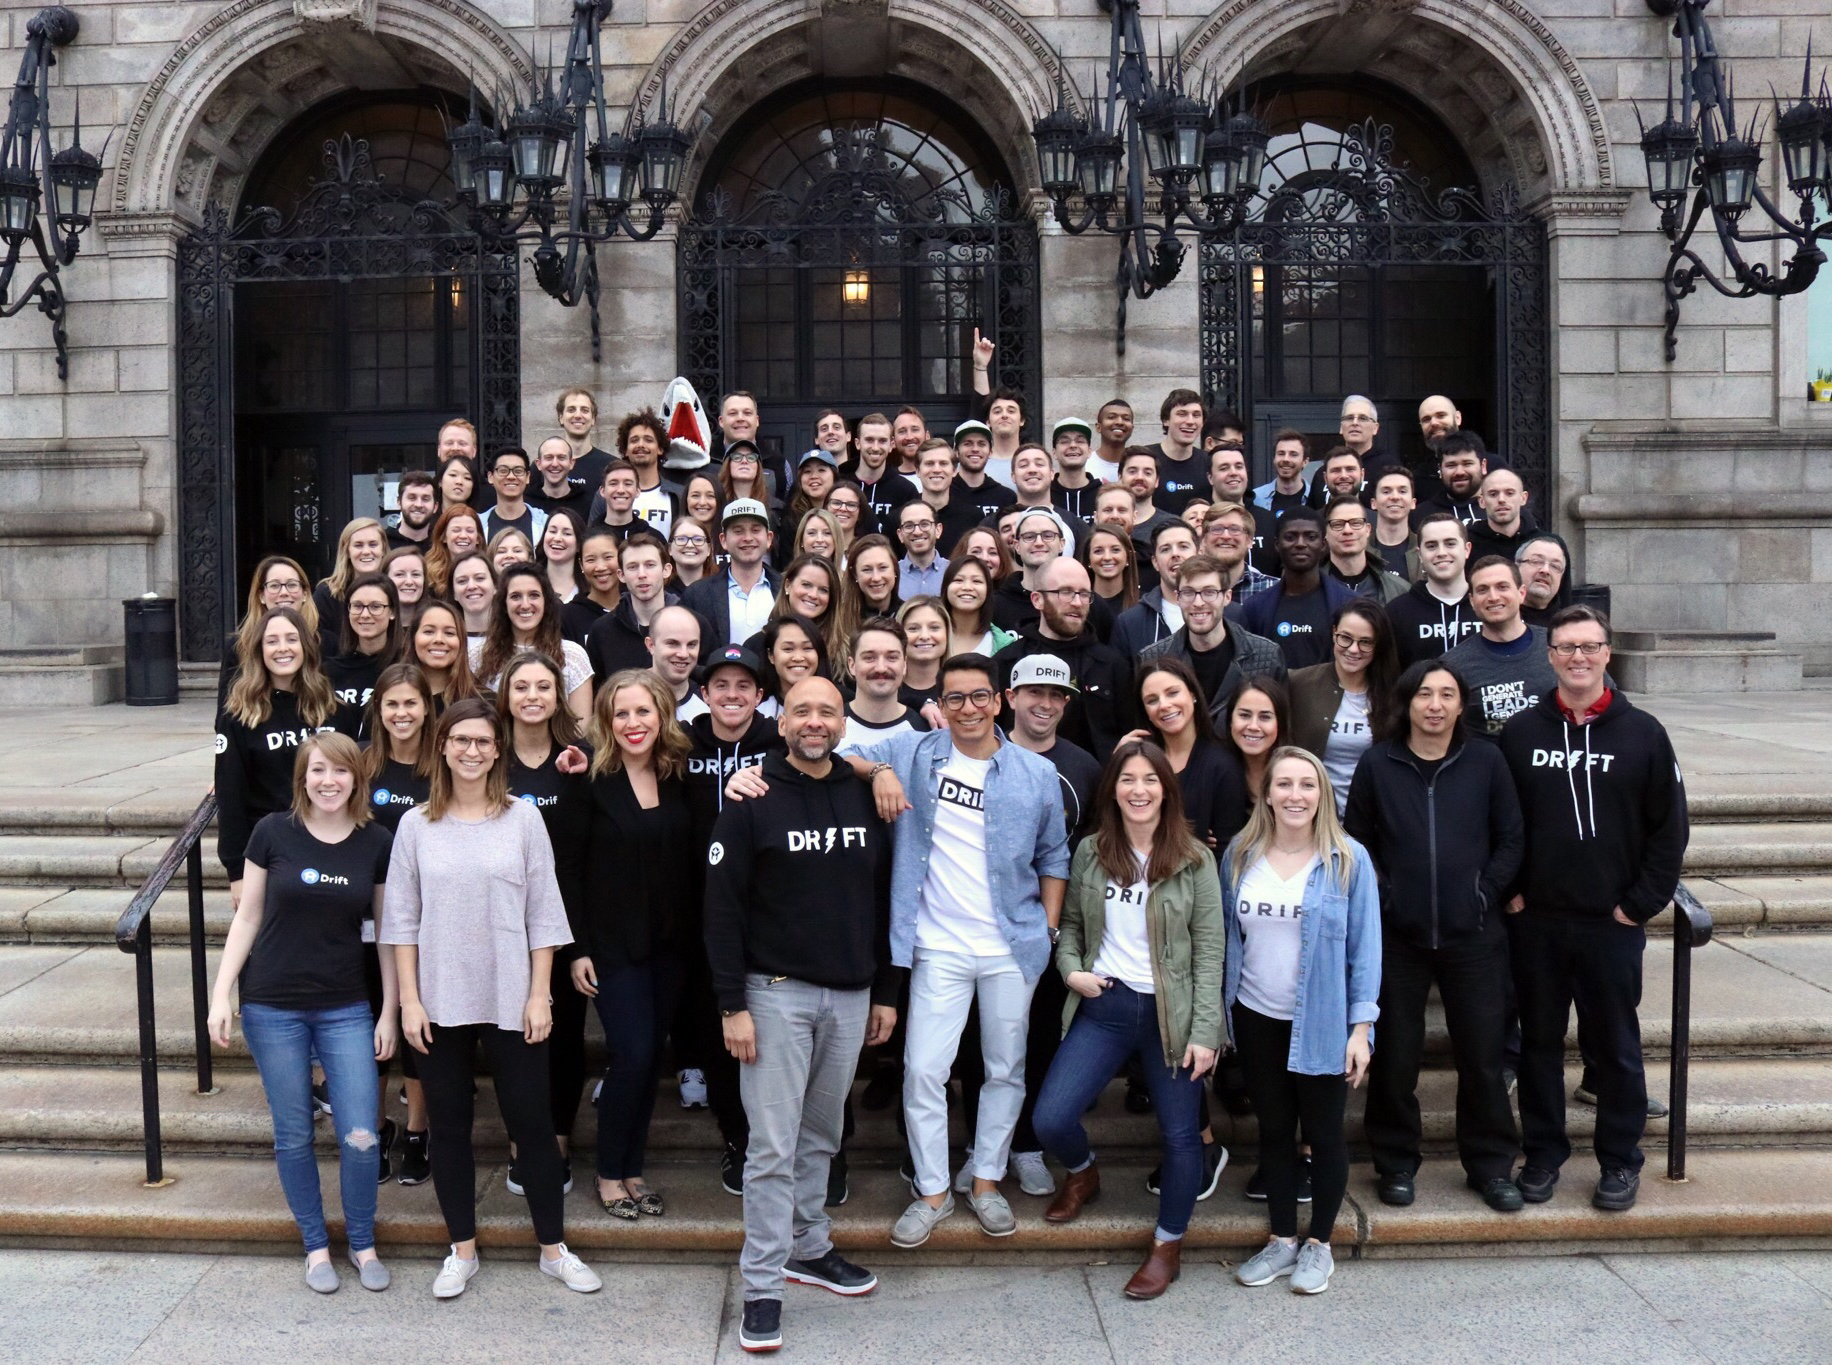 Drift acquires Siftrock to power its new sales and marketing assistant